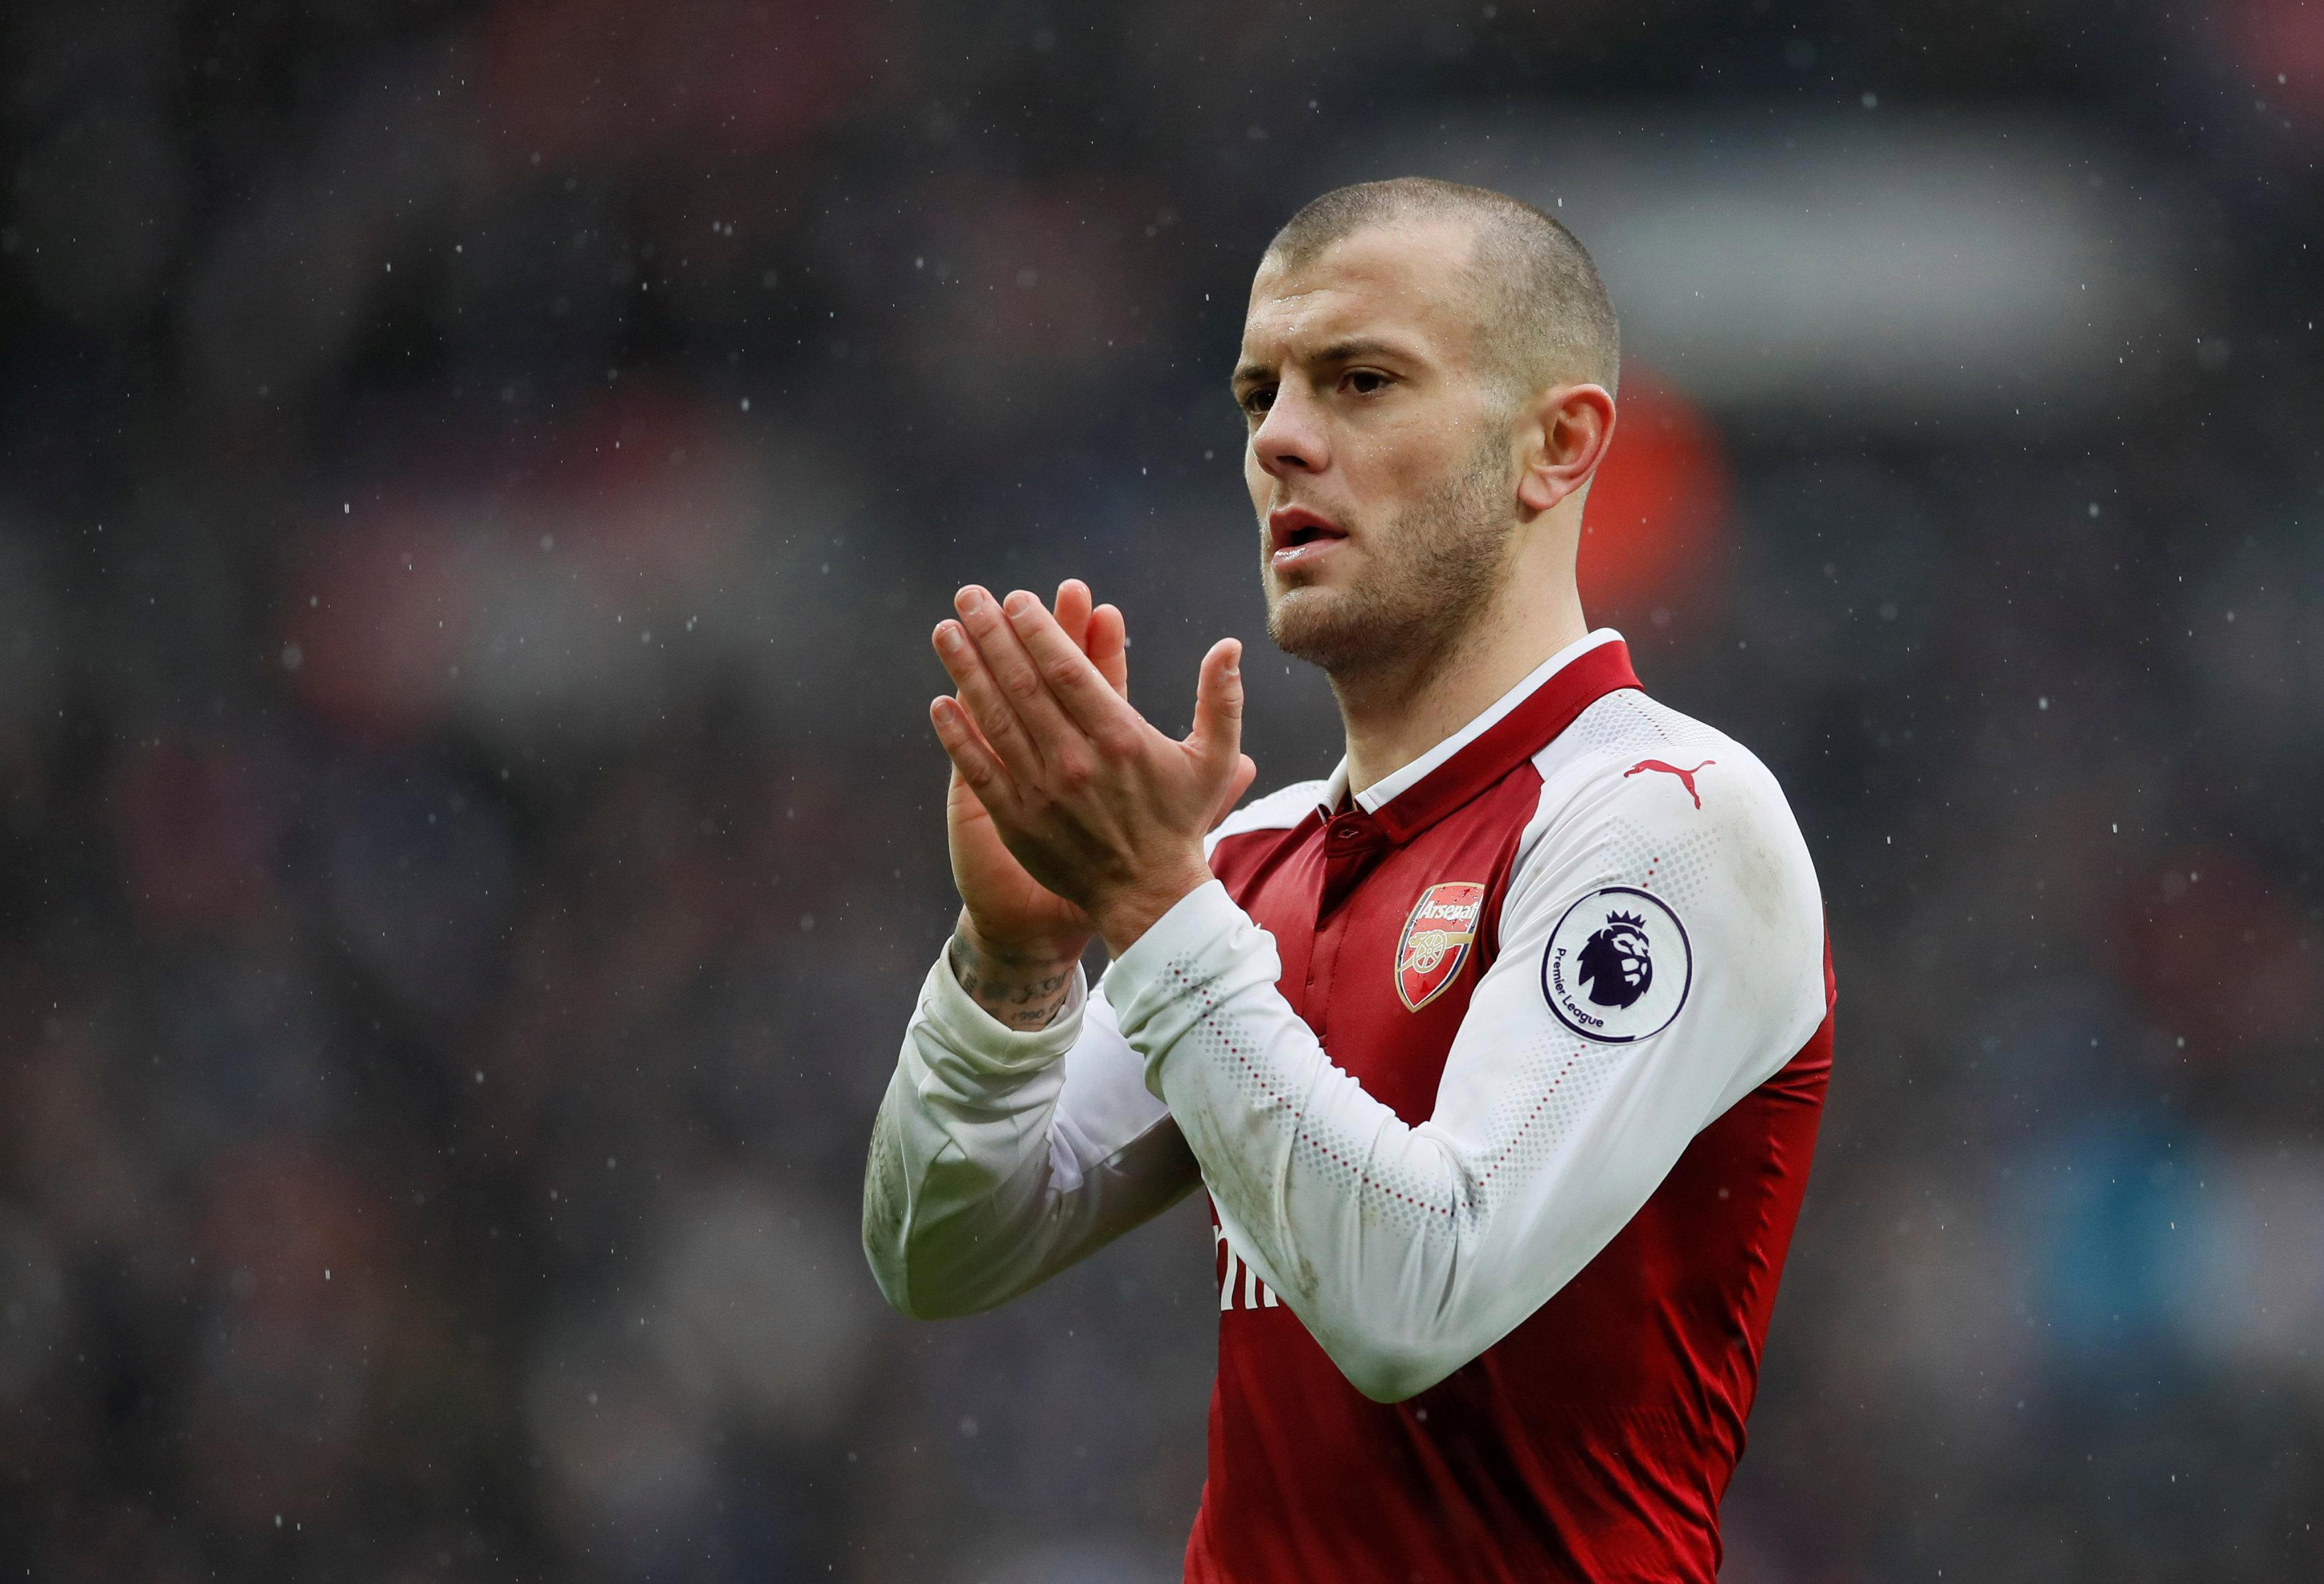 Jack Wilshere is on Juventus' radar with his future still up in the air